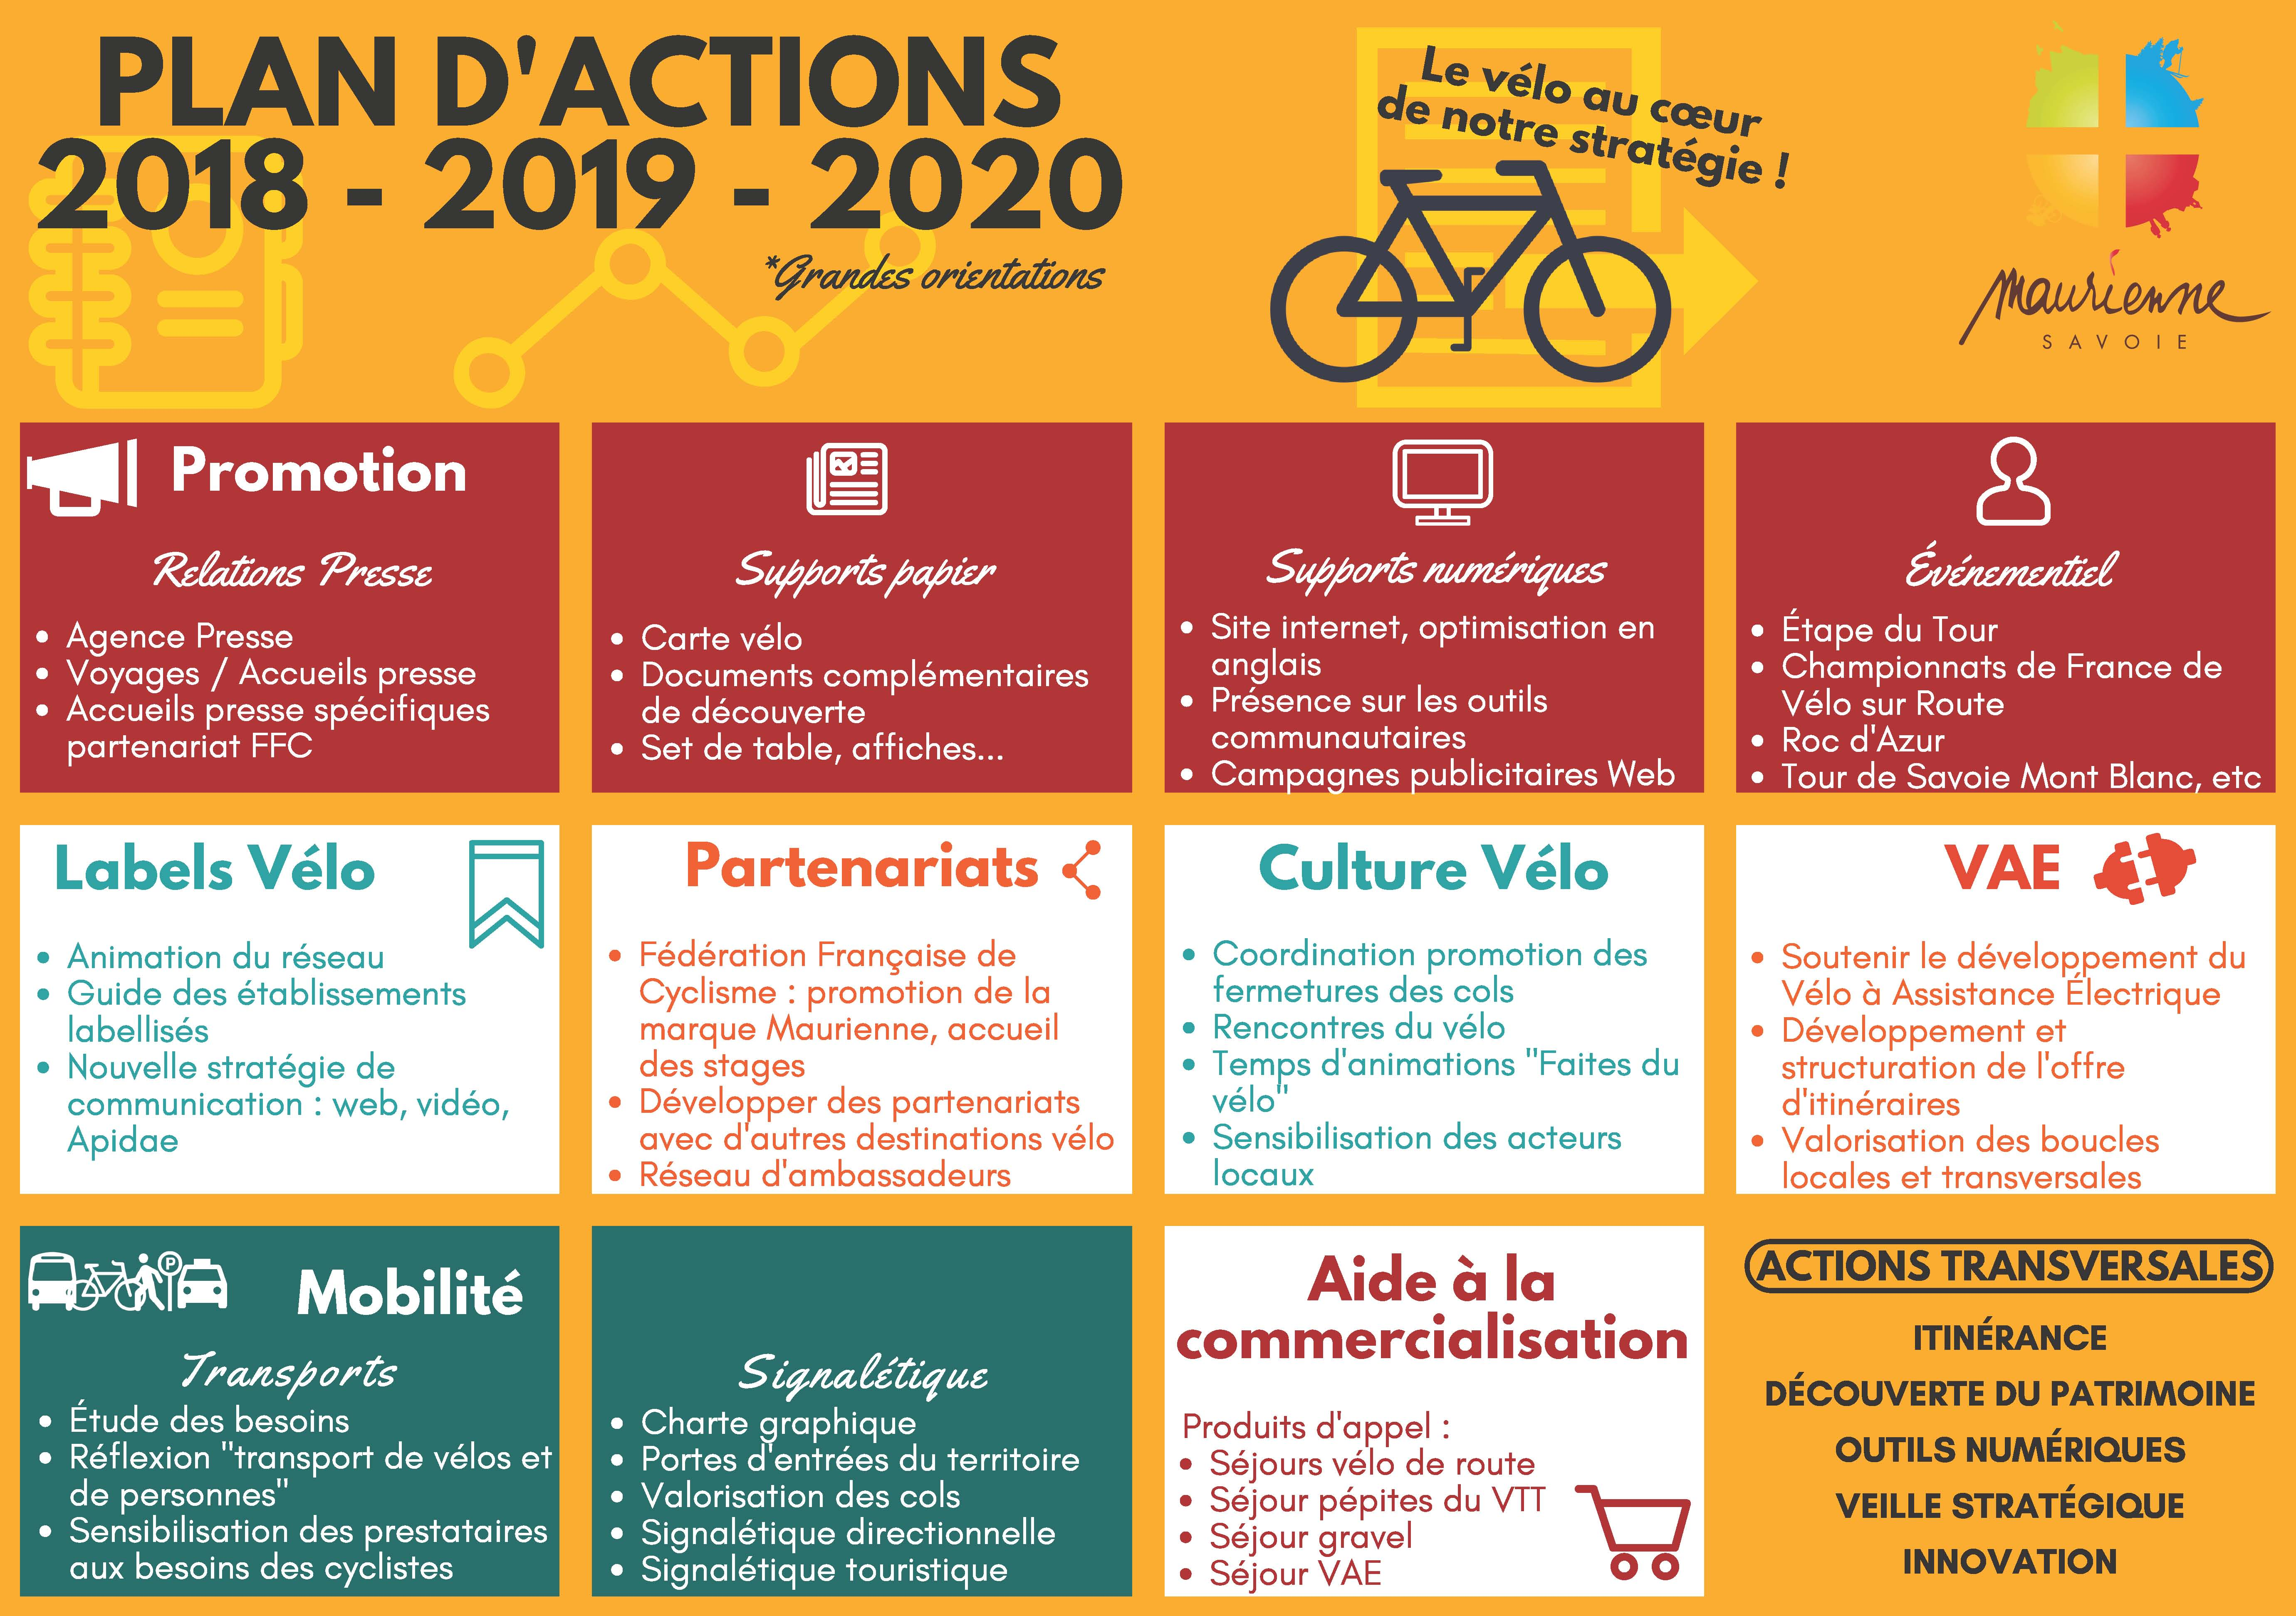 Plan d'actions 2018-2020